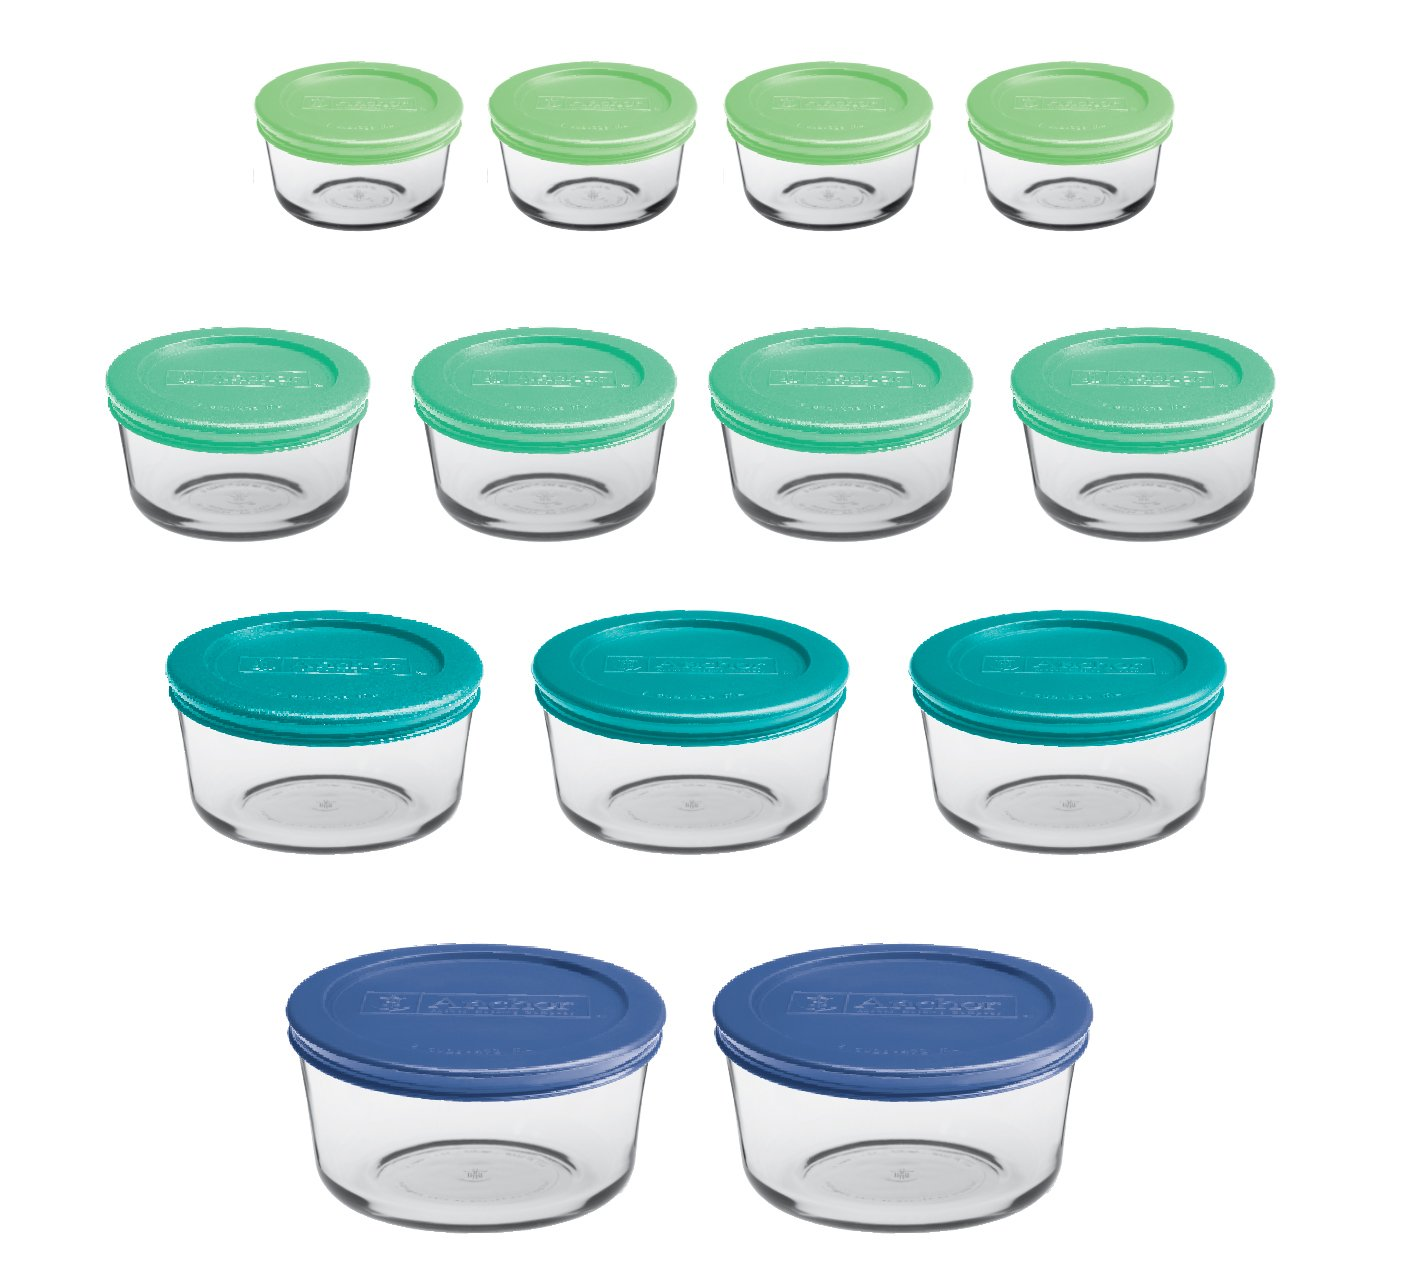 Anchor Hocking 12895ECOM Classic Glass Food Storage Containers with Lids, Mixed Blue, 26-Piece Set